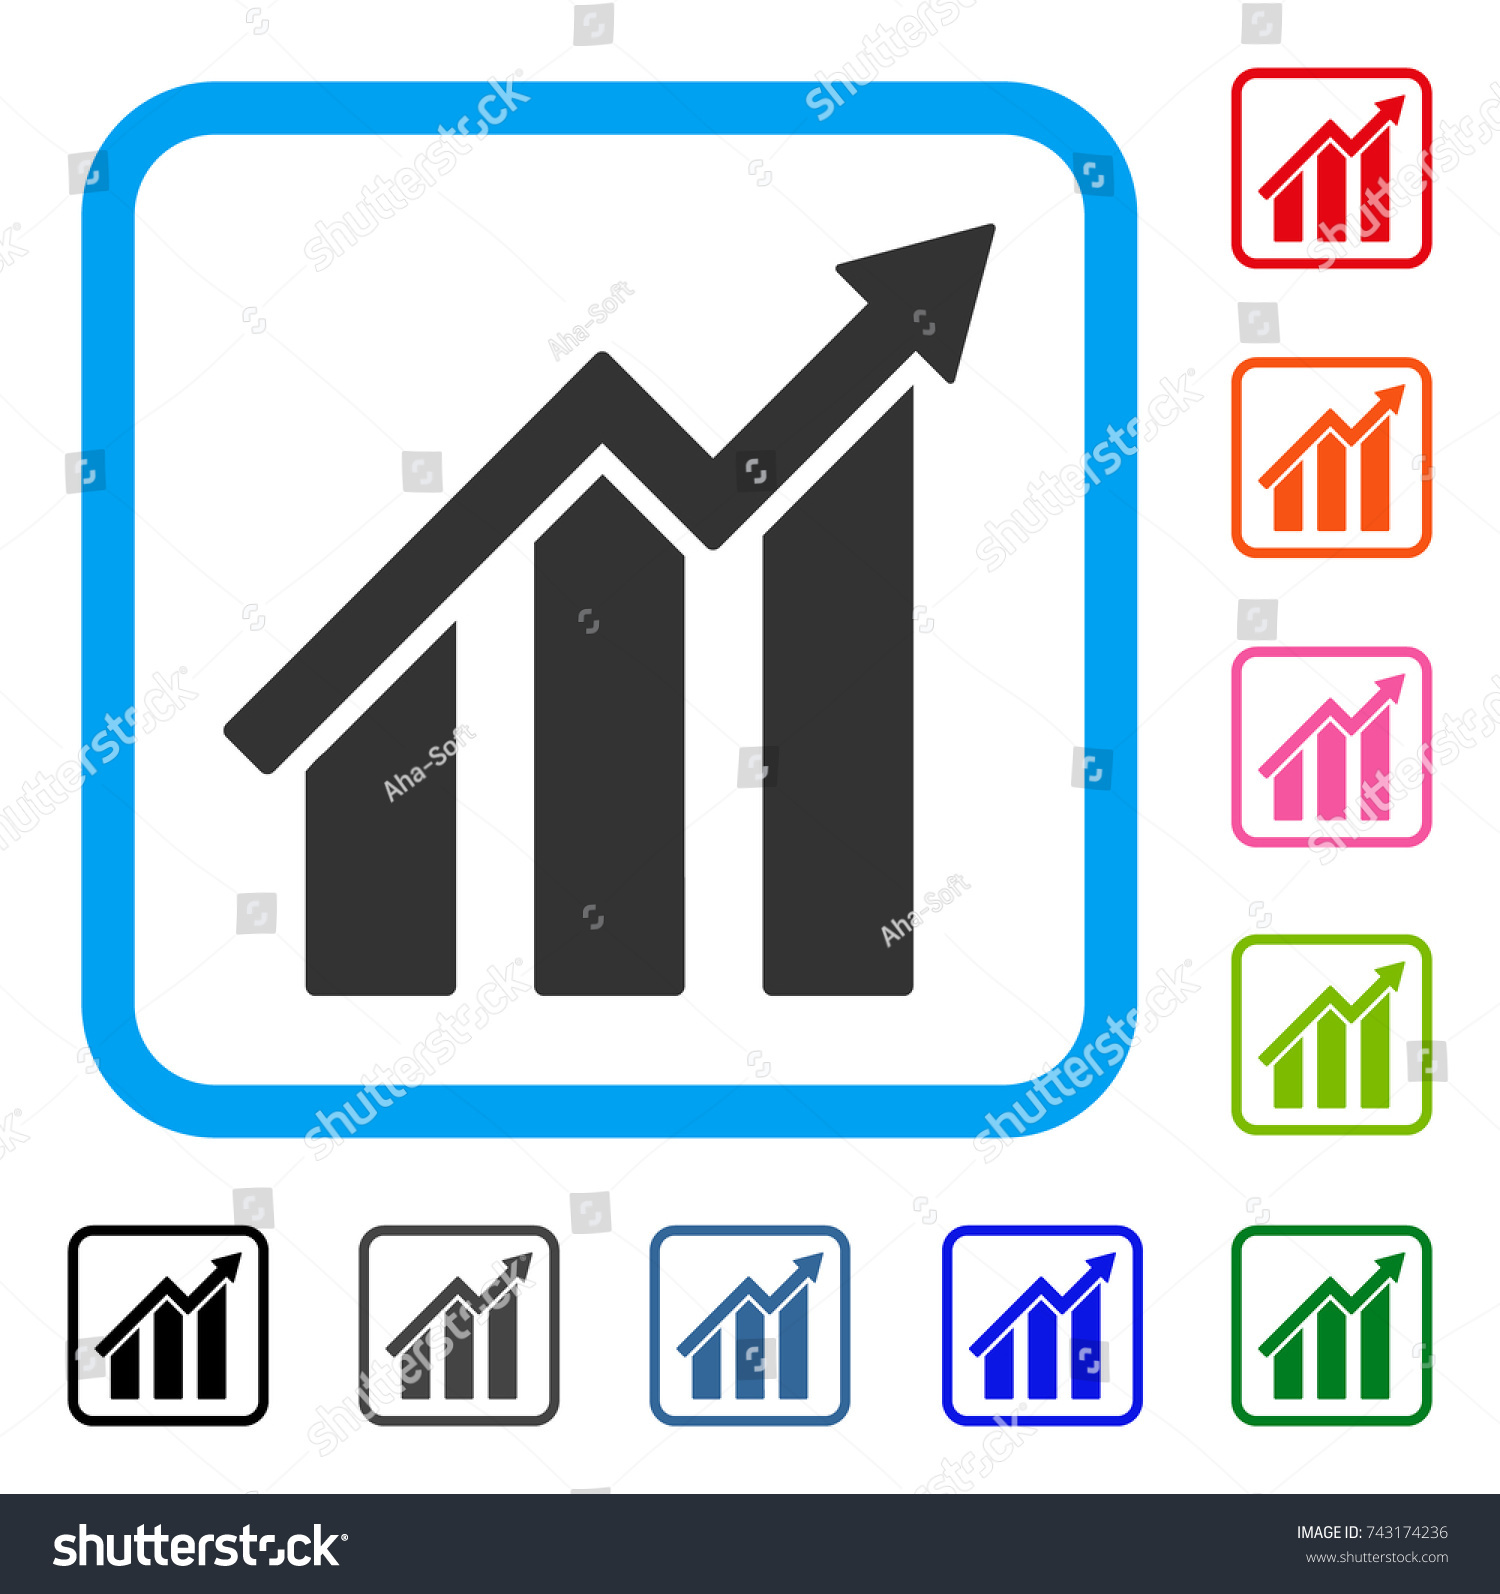 Growth chart app gallery free any chart examples growth chart icon flat grey iconic stock vector 743174236 growth chart icon flat grey iconic symbol nvjuhfo Gallery